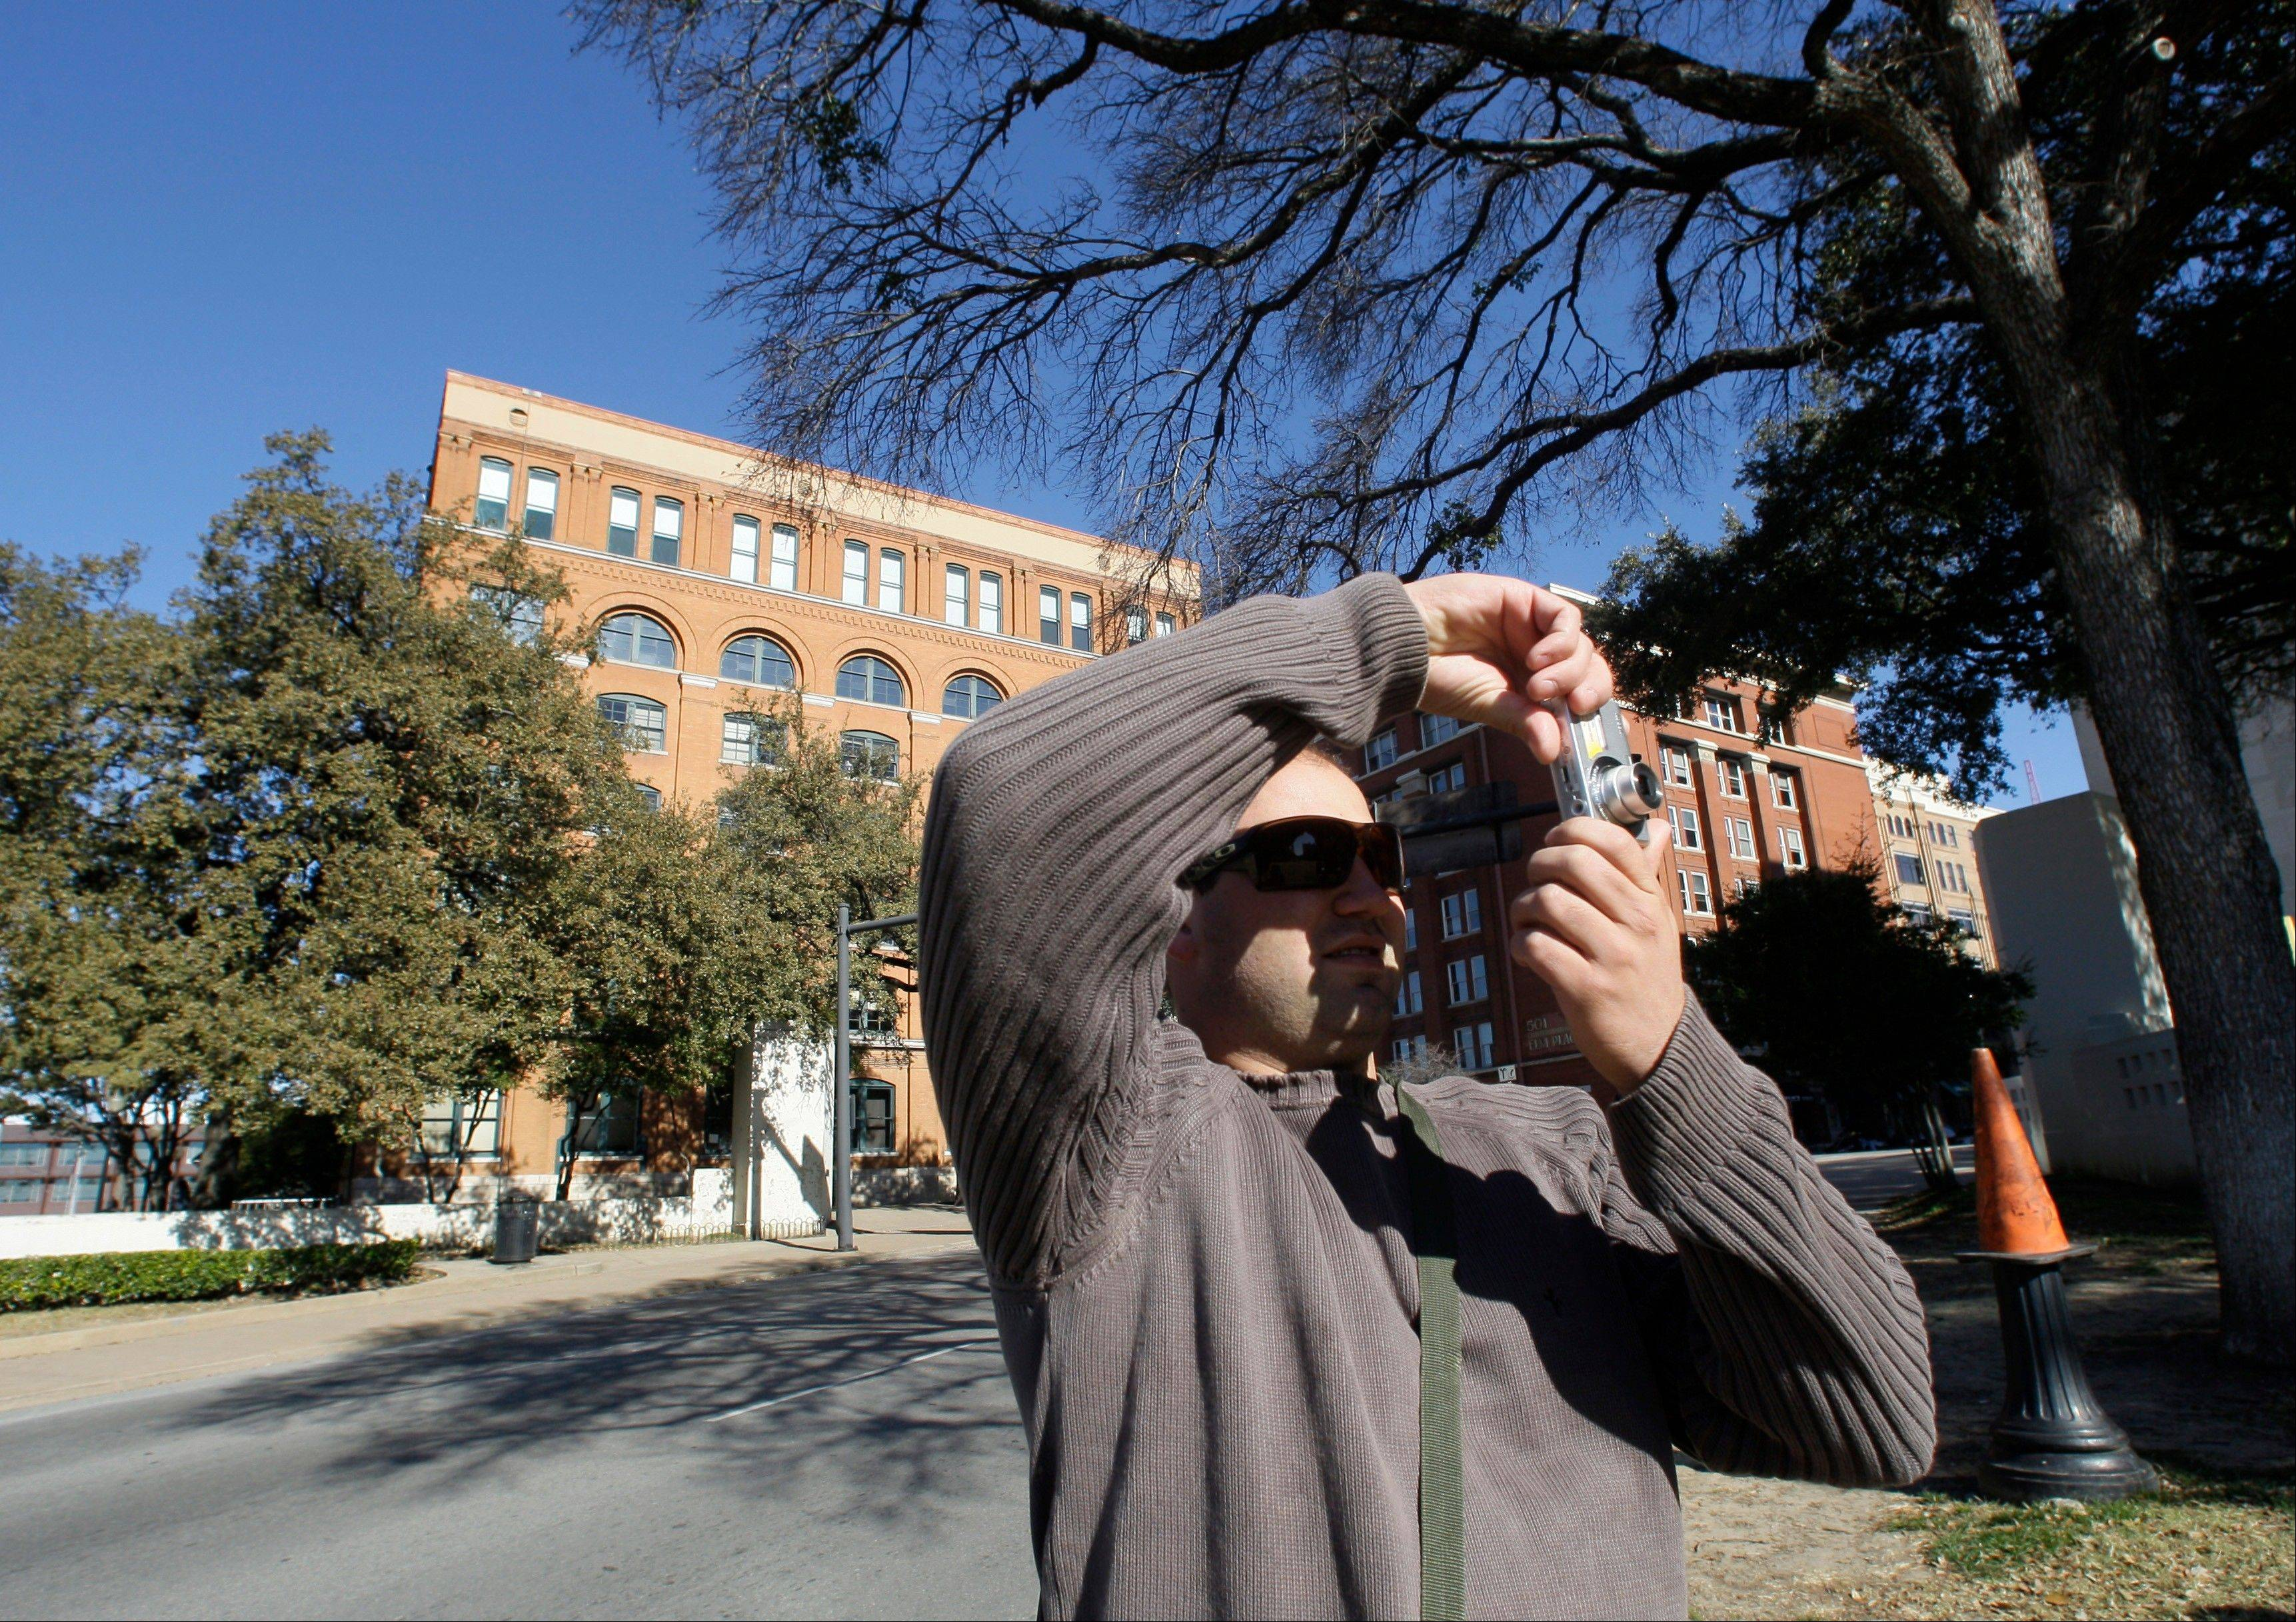 Rafael Boff of Brazil takes photographs while visiting Dealey Plaza, site of President John F. Kennedy's assassination, in Dallas. The building once used as a book depository and now home to the Sixth Floor Museum can be seen in the background.